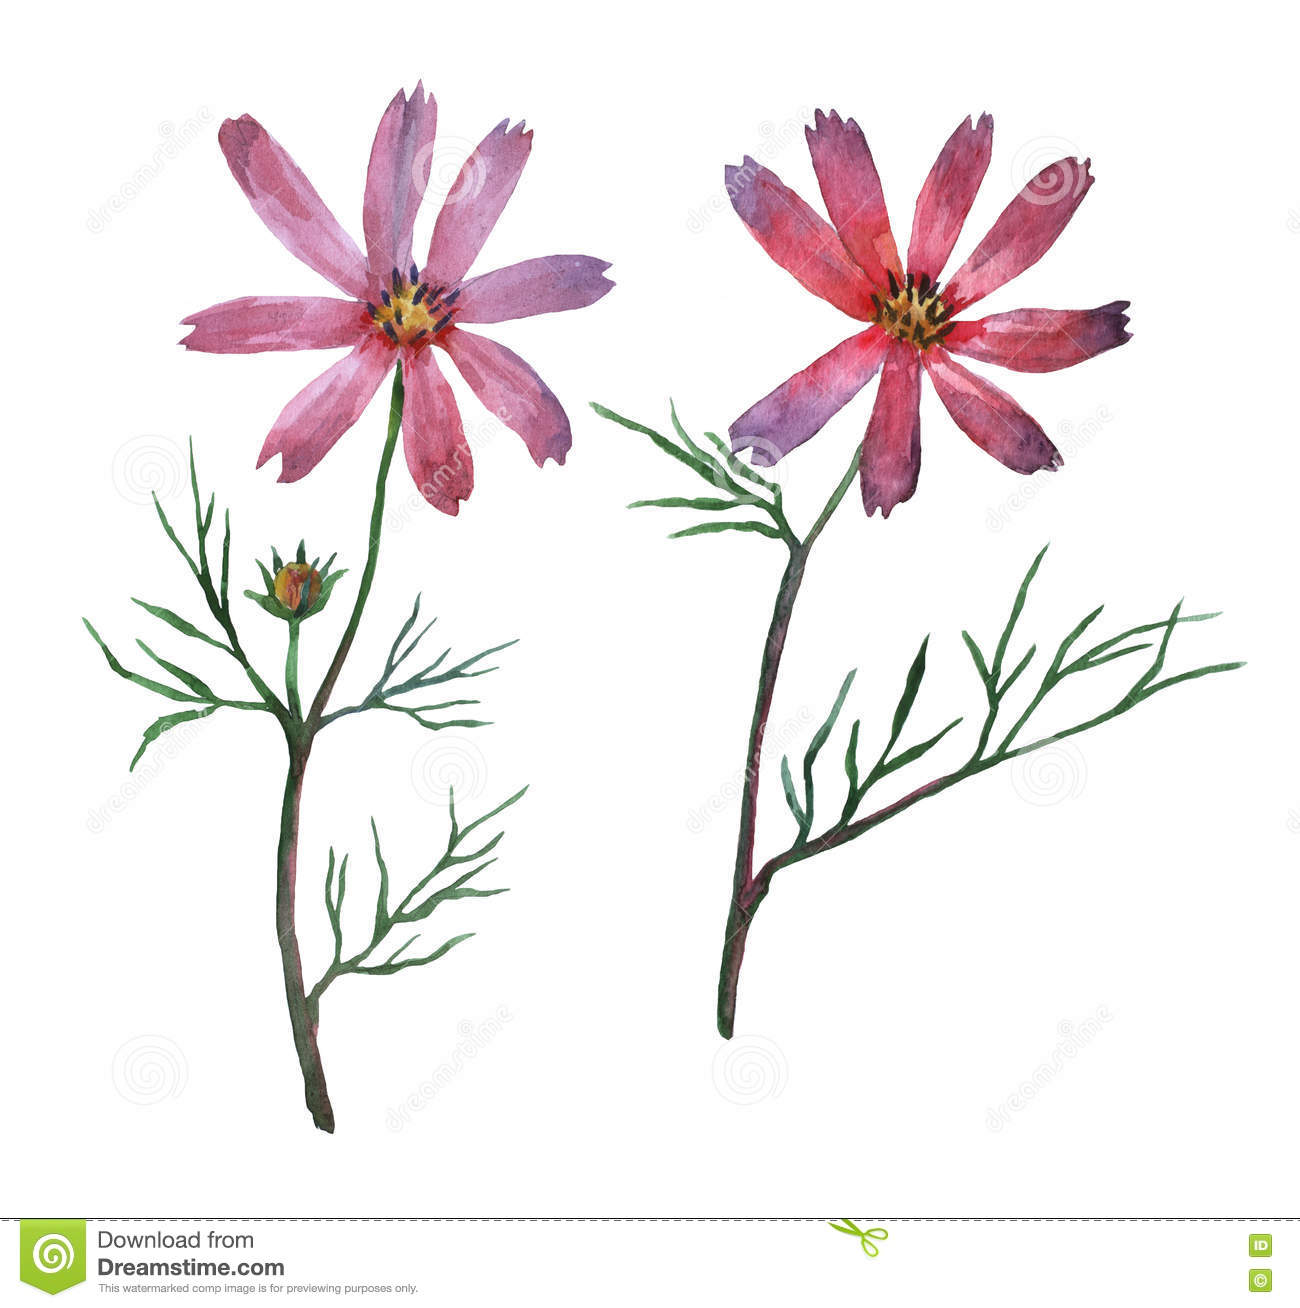 Pink Cosmos bipinnatus, commonly called the garden cosmos or Mexican aster.